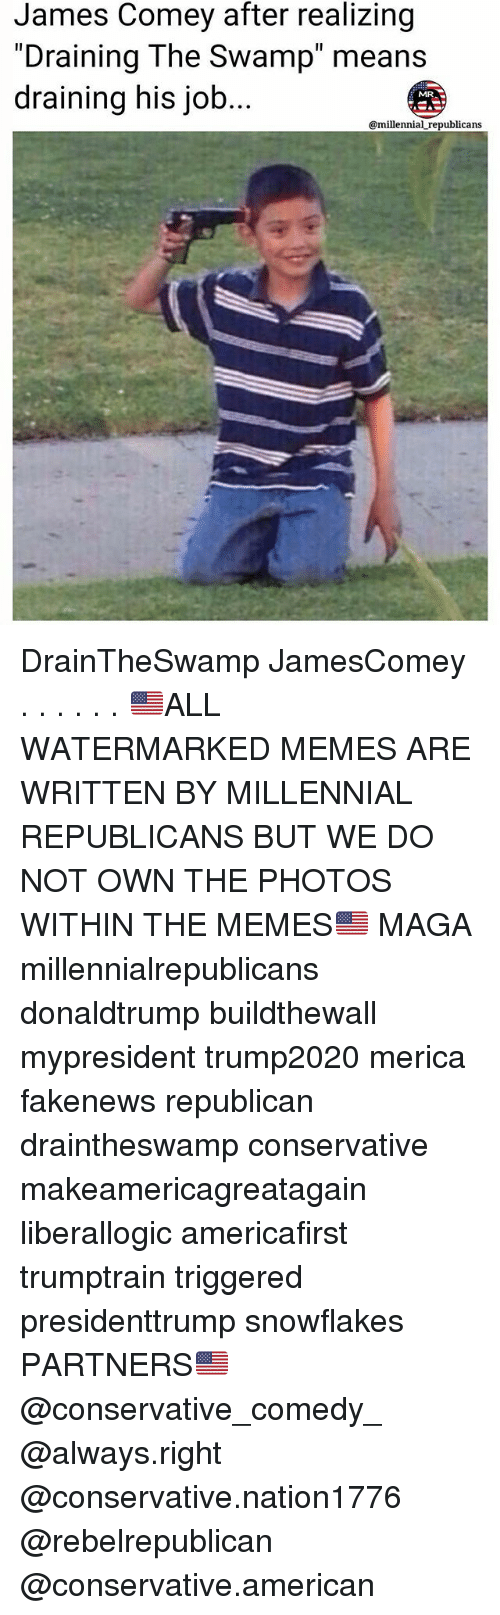 """Memes, American, and Conservative: James Comey after realizing  """"Draining The Swamp"""" means  draining his job  MRA  @millennial republicans DrainTheSwamp JamesComey . . . . . . 🇺🇸ALL WATERMARKED MEMES ARE WRITTEN BY MILLENNIAL REPUBLICANS BUT WE DO NOT OWN THE PHOTOS WITHIN THE MEMES🇺🇸 MAGA millennialrepublicans donaldtrump buildthewall mypresident trump2020 merica fakenews republican draintheswamp conservative makeamericagreatagain liberallogic americafirst trumptrain triggered presidenttrump snowflakes PARTNERS🇺🇸 @conservative_comedy_ @always.right @conservative.nation1776 @rebelrepublican @conservative.american"""